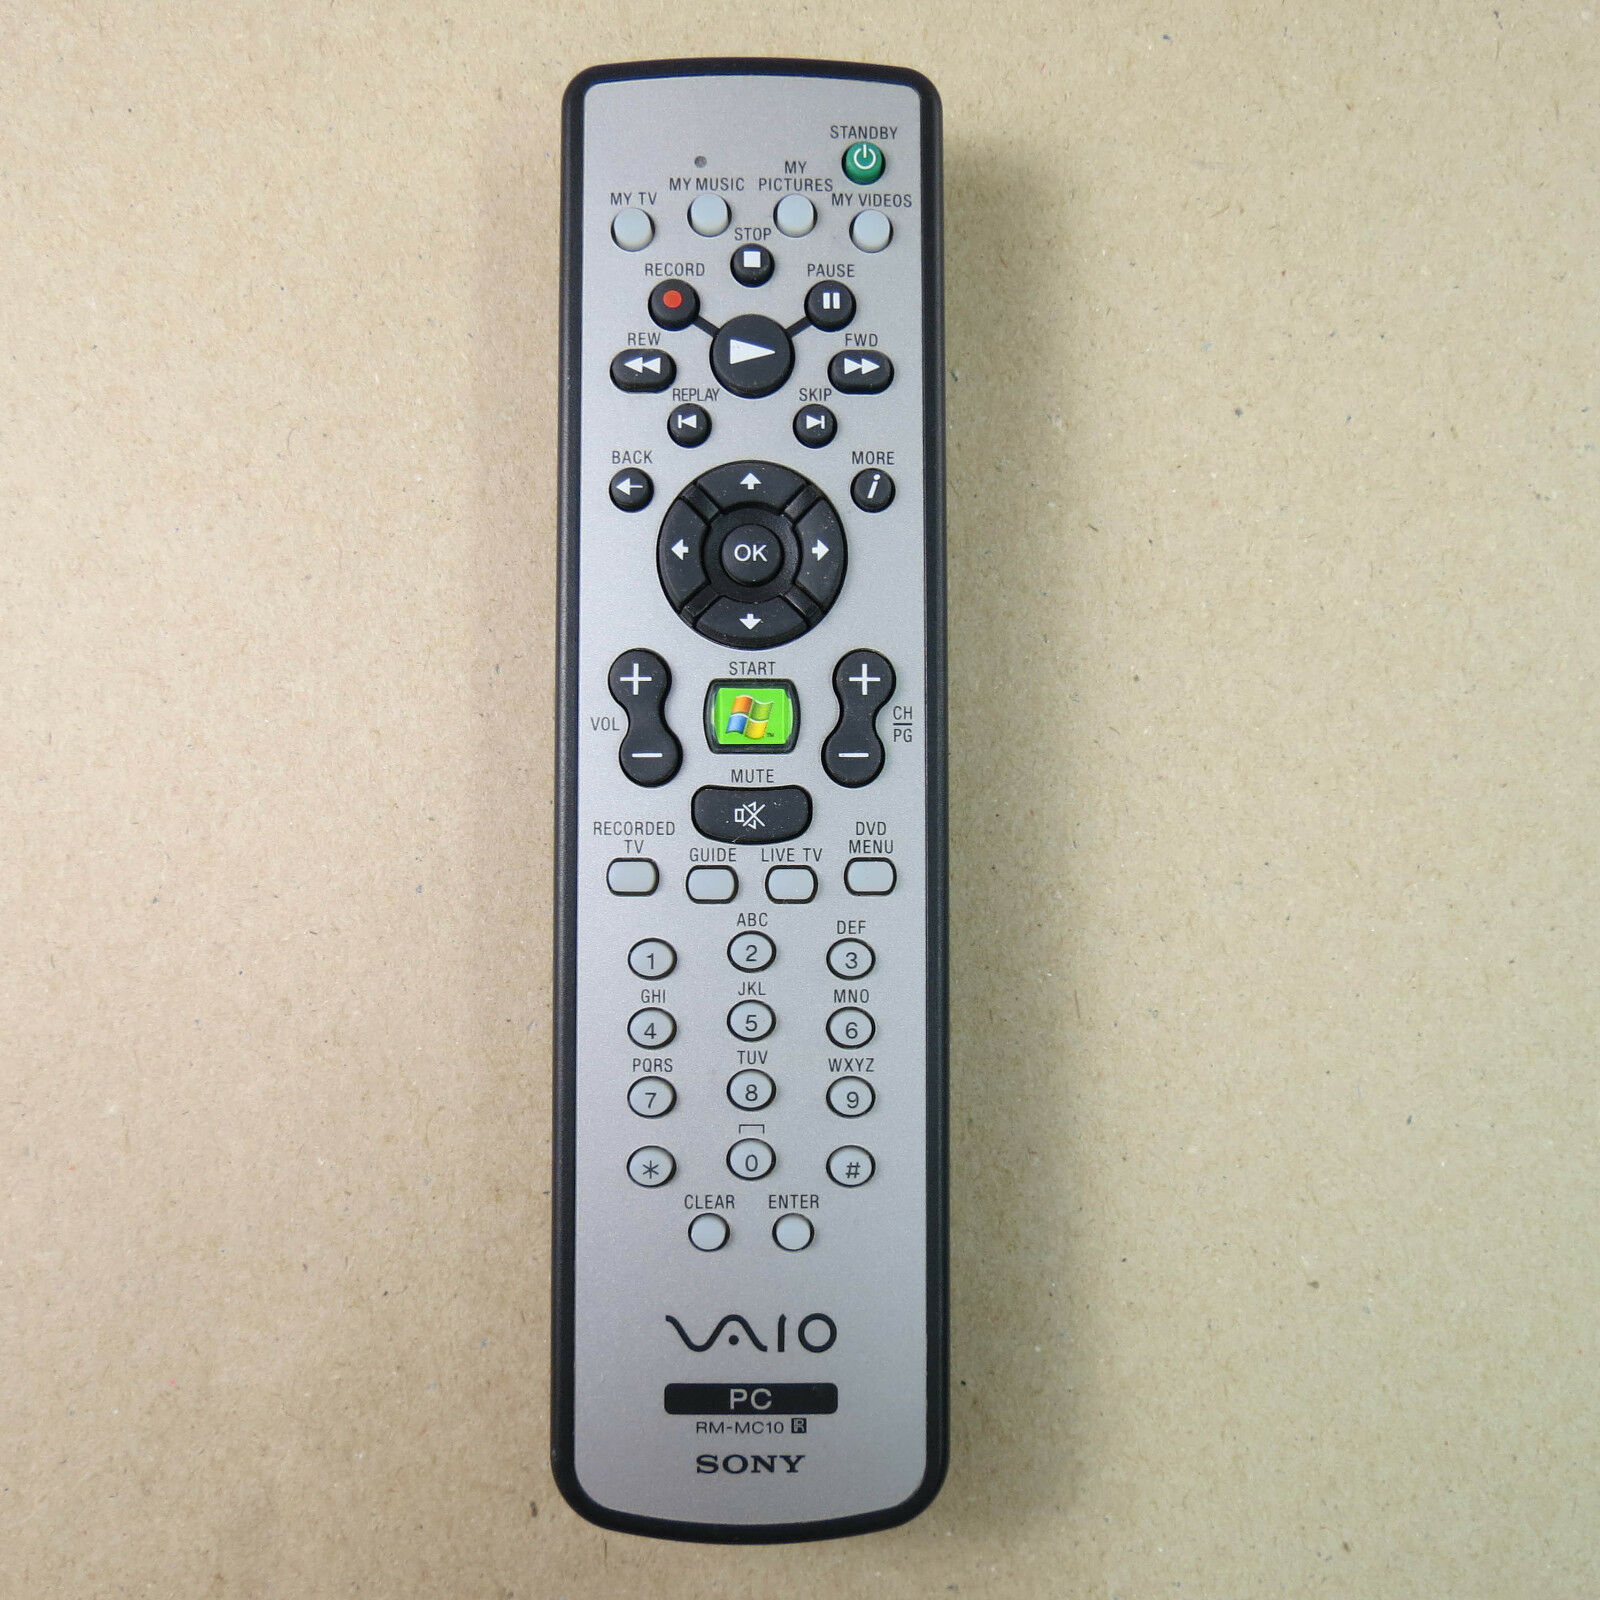 Sony Vaio RM-MC10 Pc Remote Control and 50 similar items